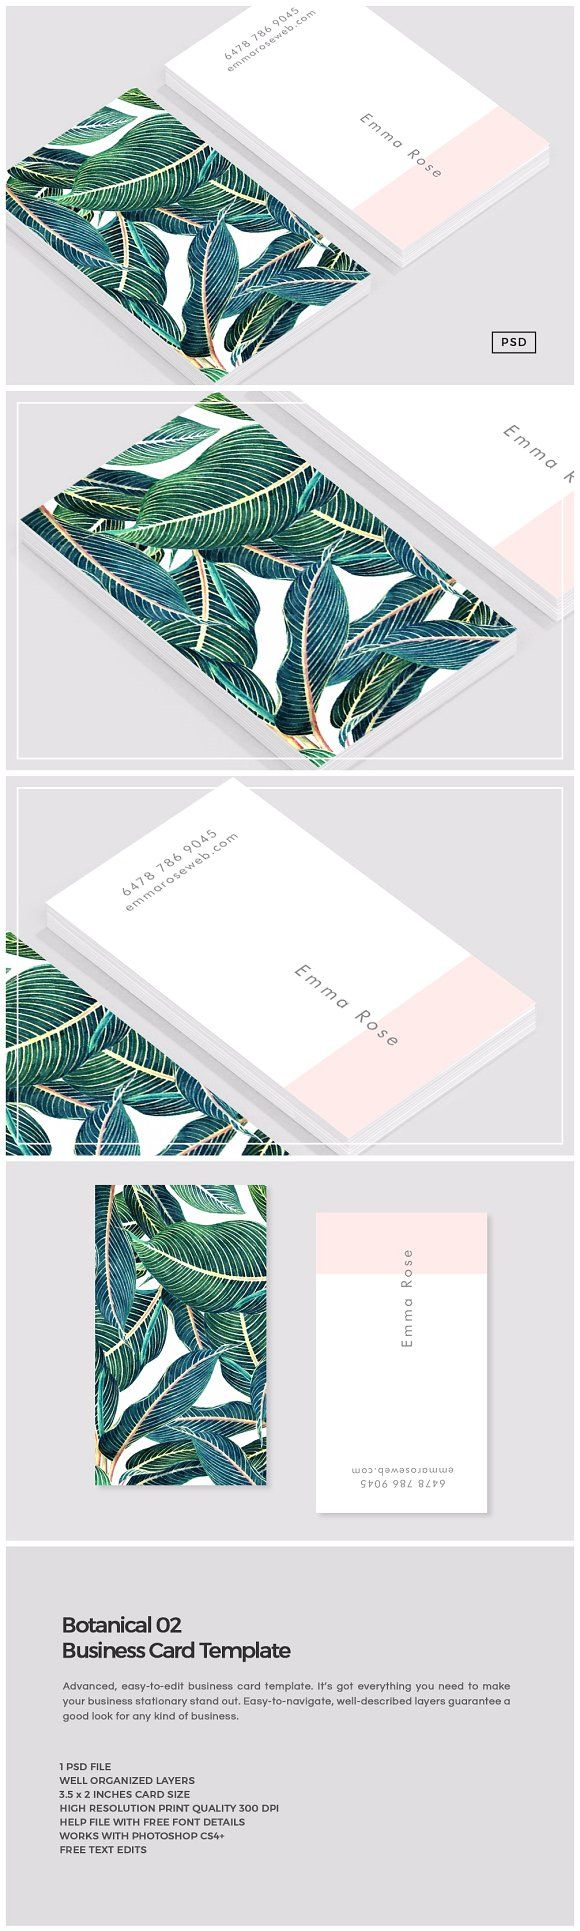 Best 25+ Free business card design ideas on Pinterest | Free ...